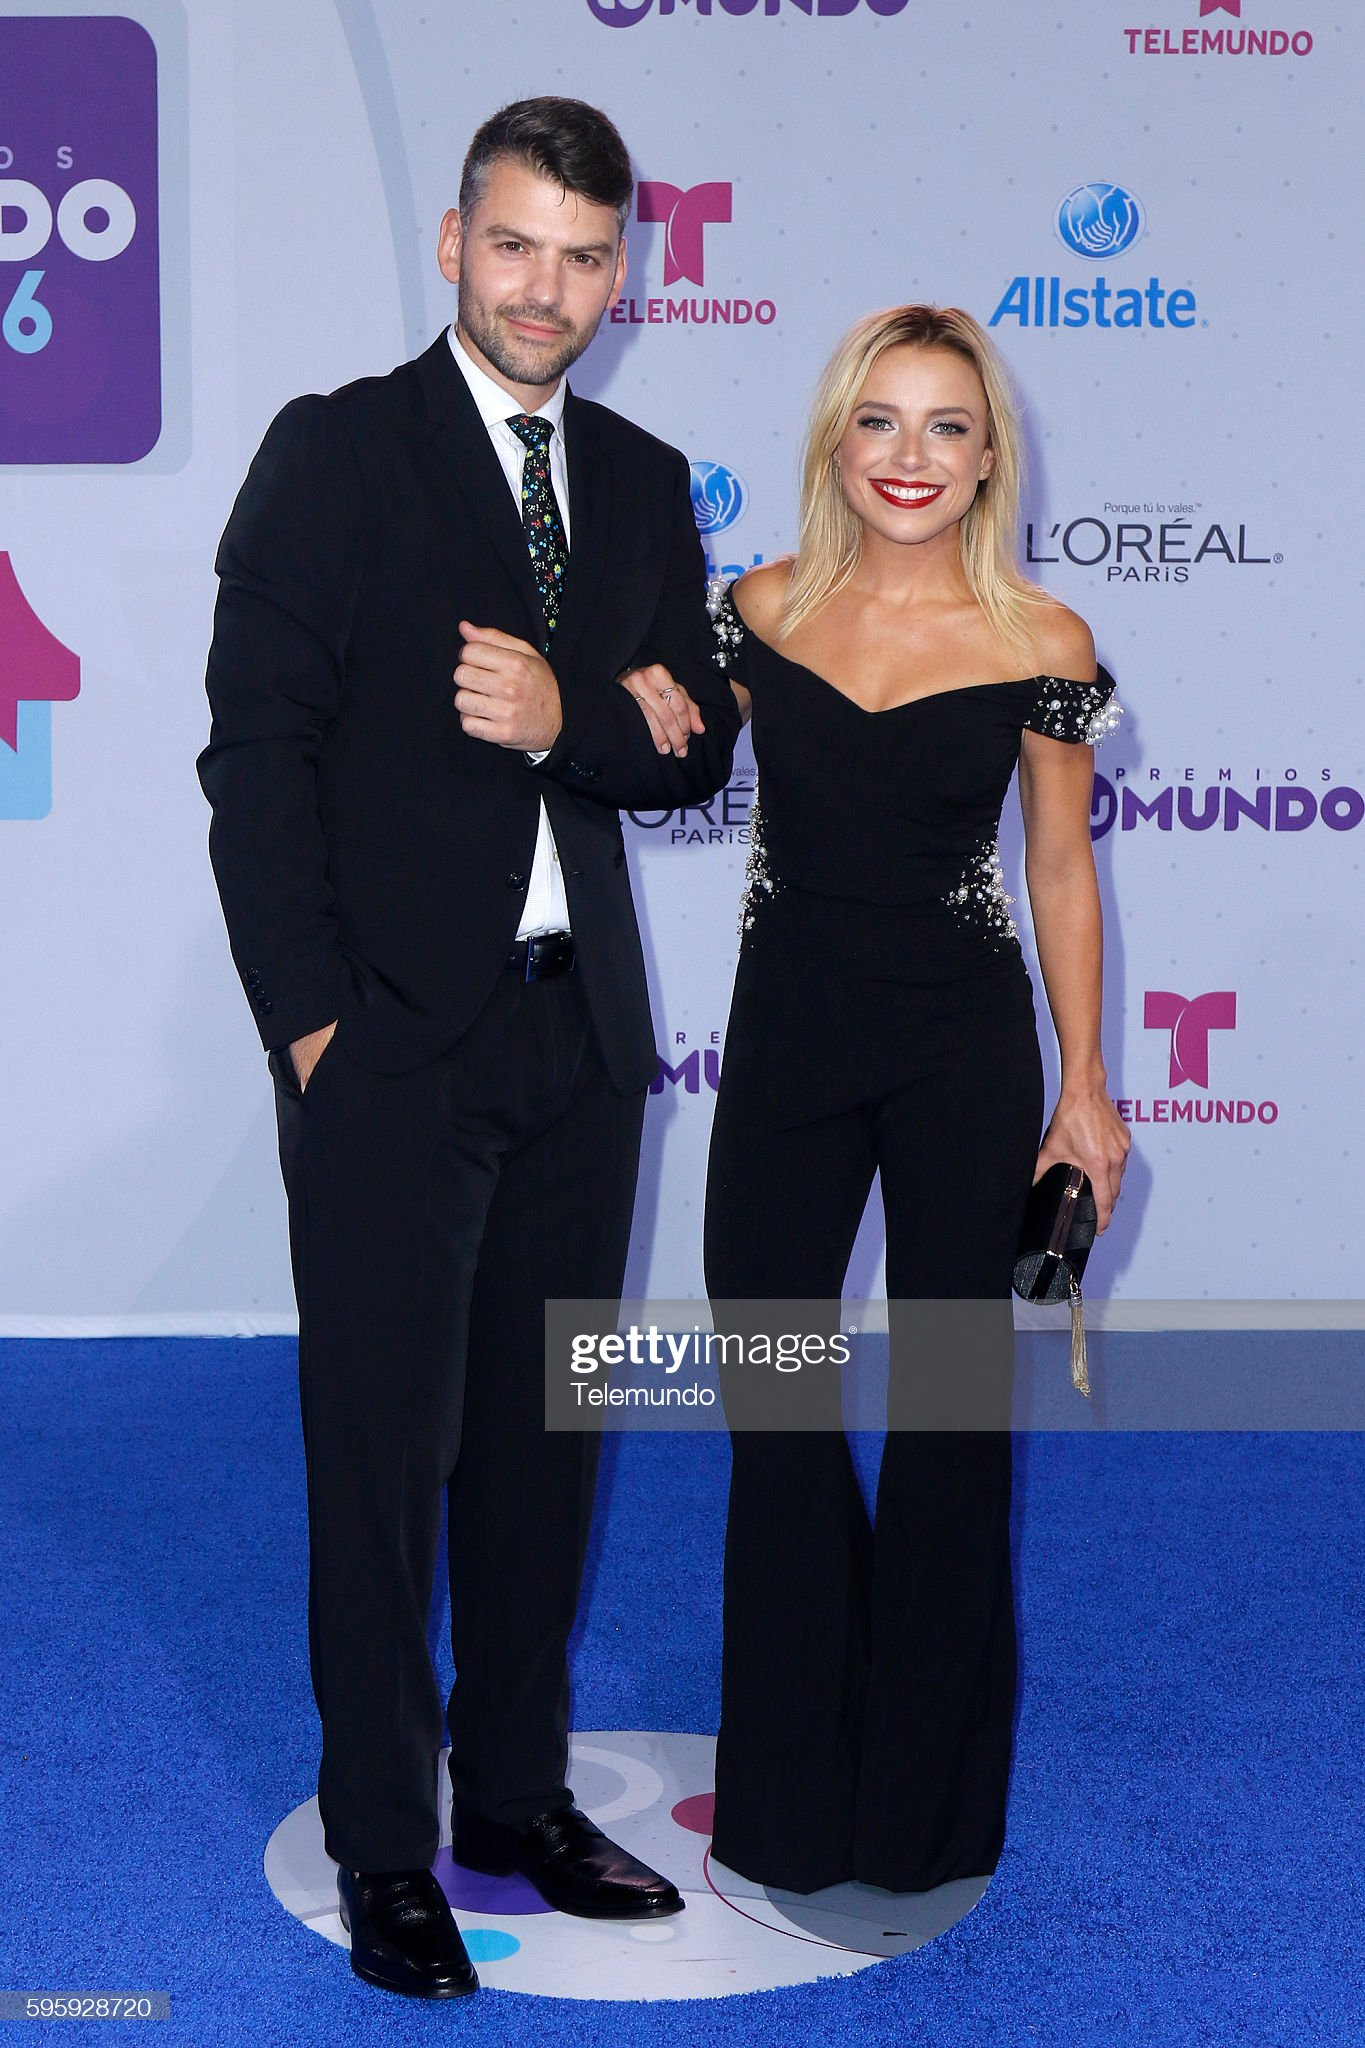 https://media.gettyimages.com/photos/blue-carpet-pictured-pablo-llano-and-marcela-guirado-arrive-at-the-picture-id595928720?s=2048x2048